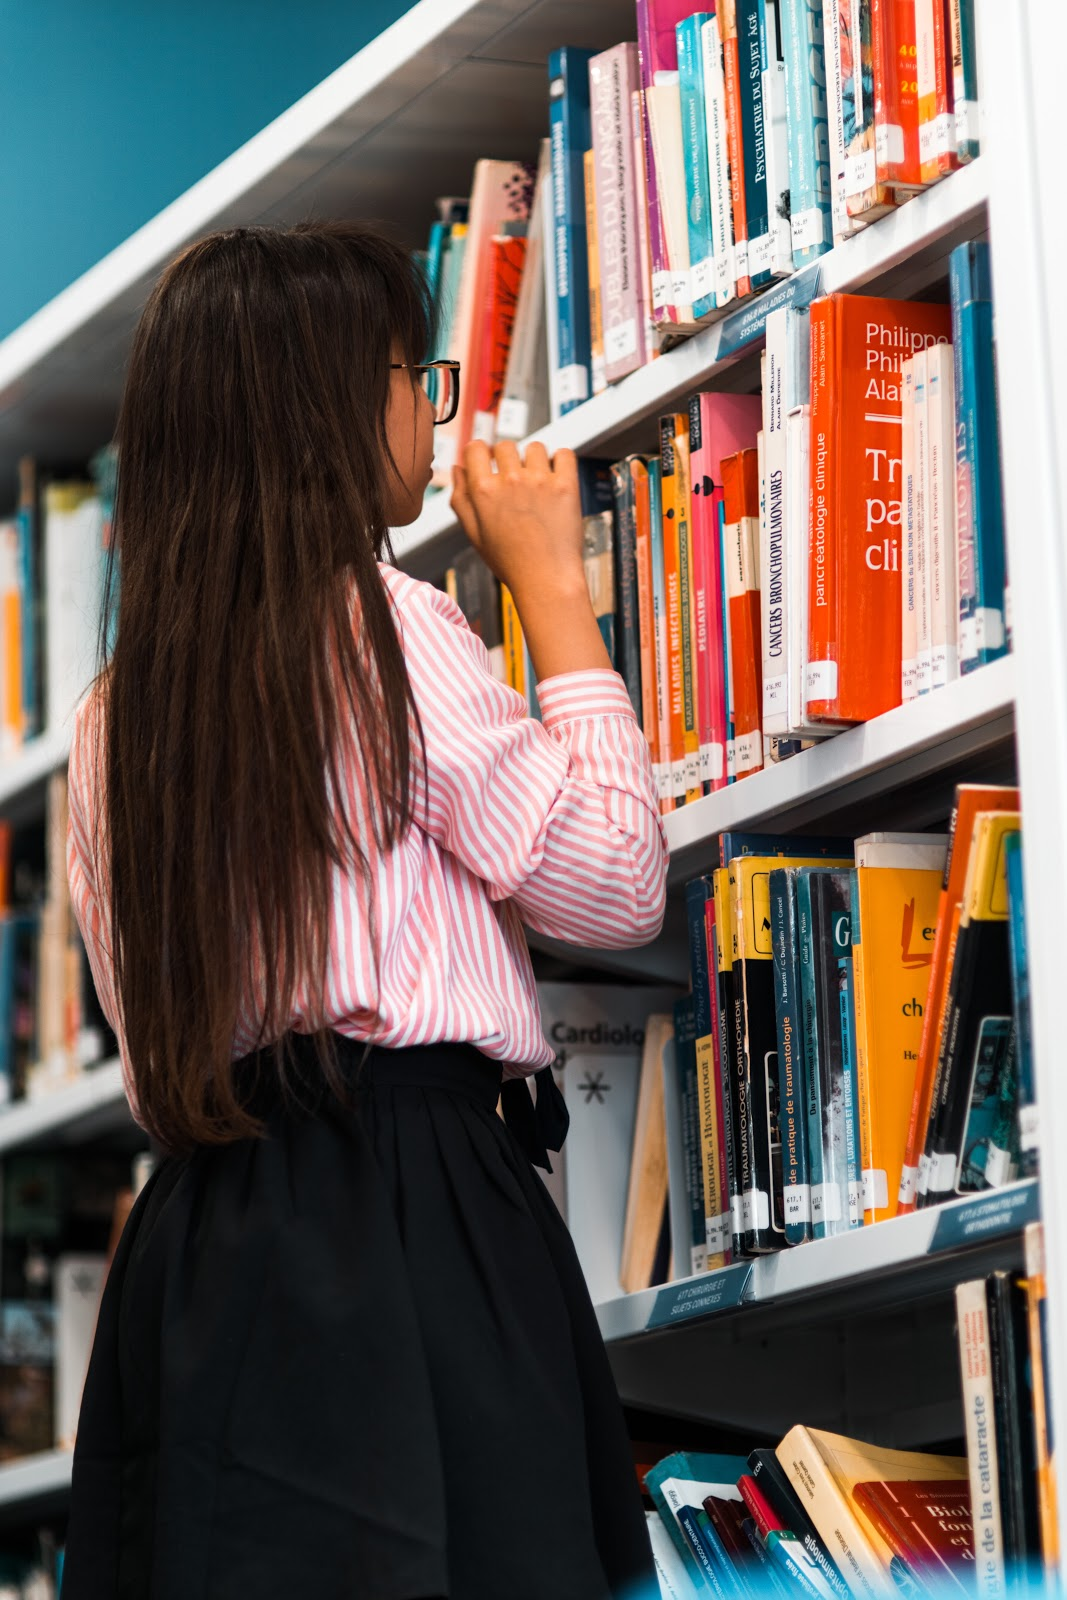 A young girl faces a shelf full of books at the library and appears to be choosing one.